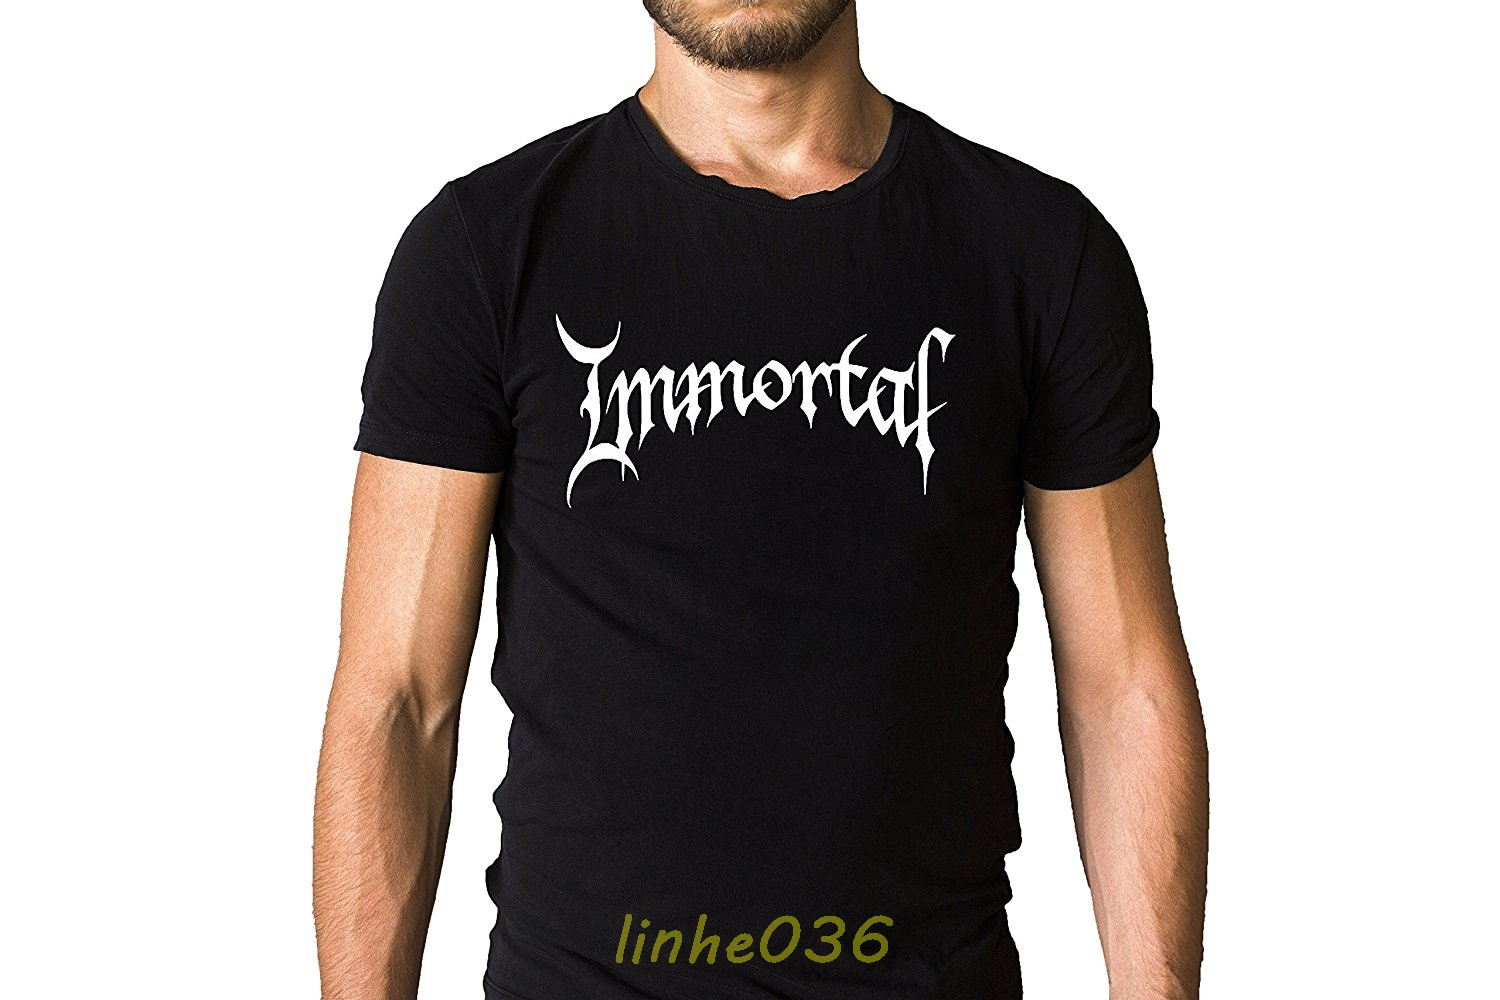 New Immortal Band Norway Metal Rock Band Men's Black T-Shirt Size S To 3XL New Fashion T Shirt Graphic Letter Normal Top Tee